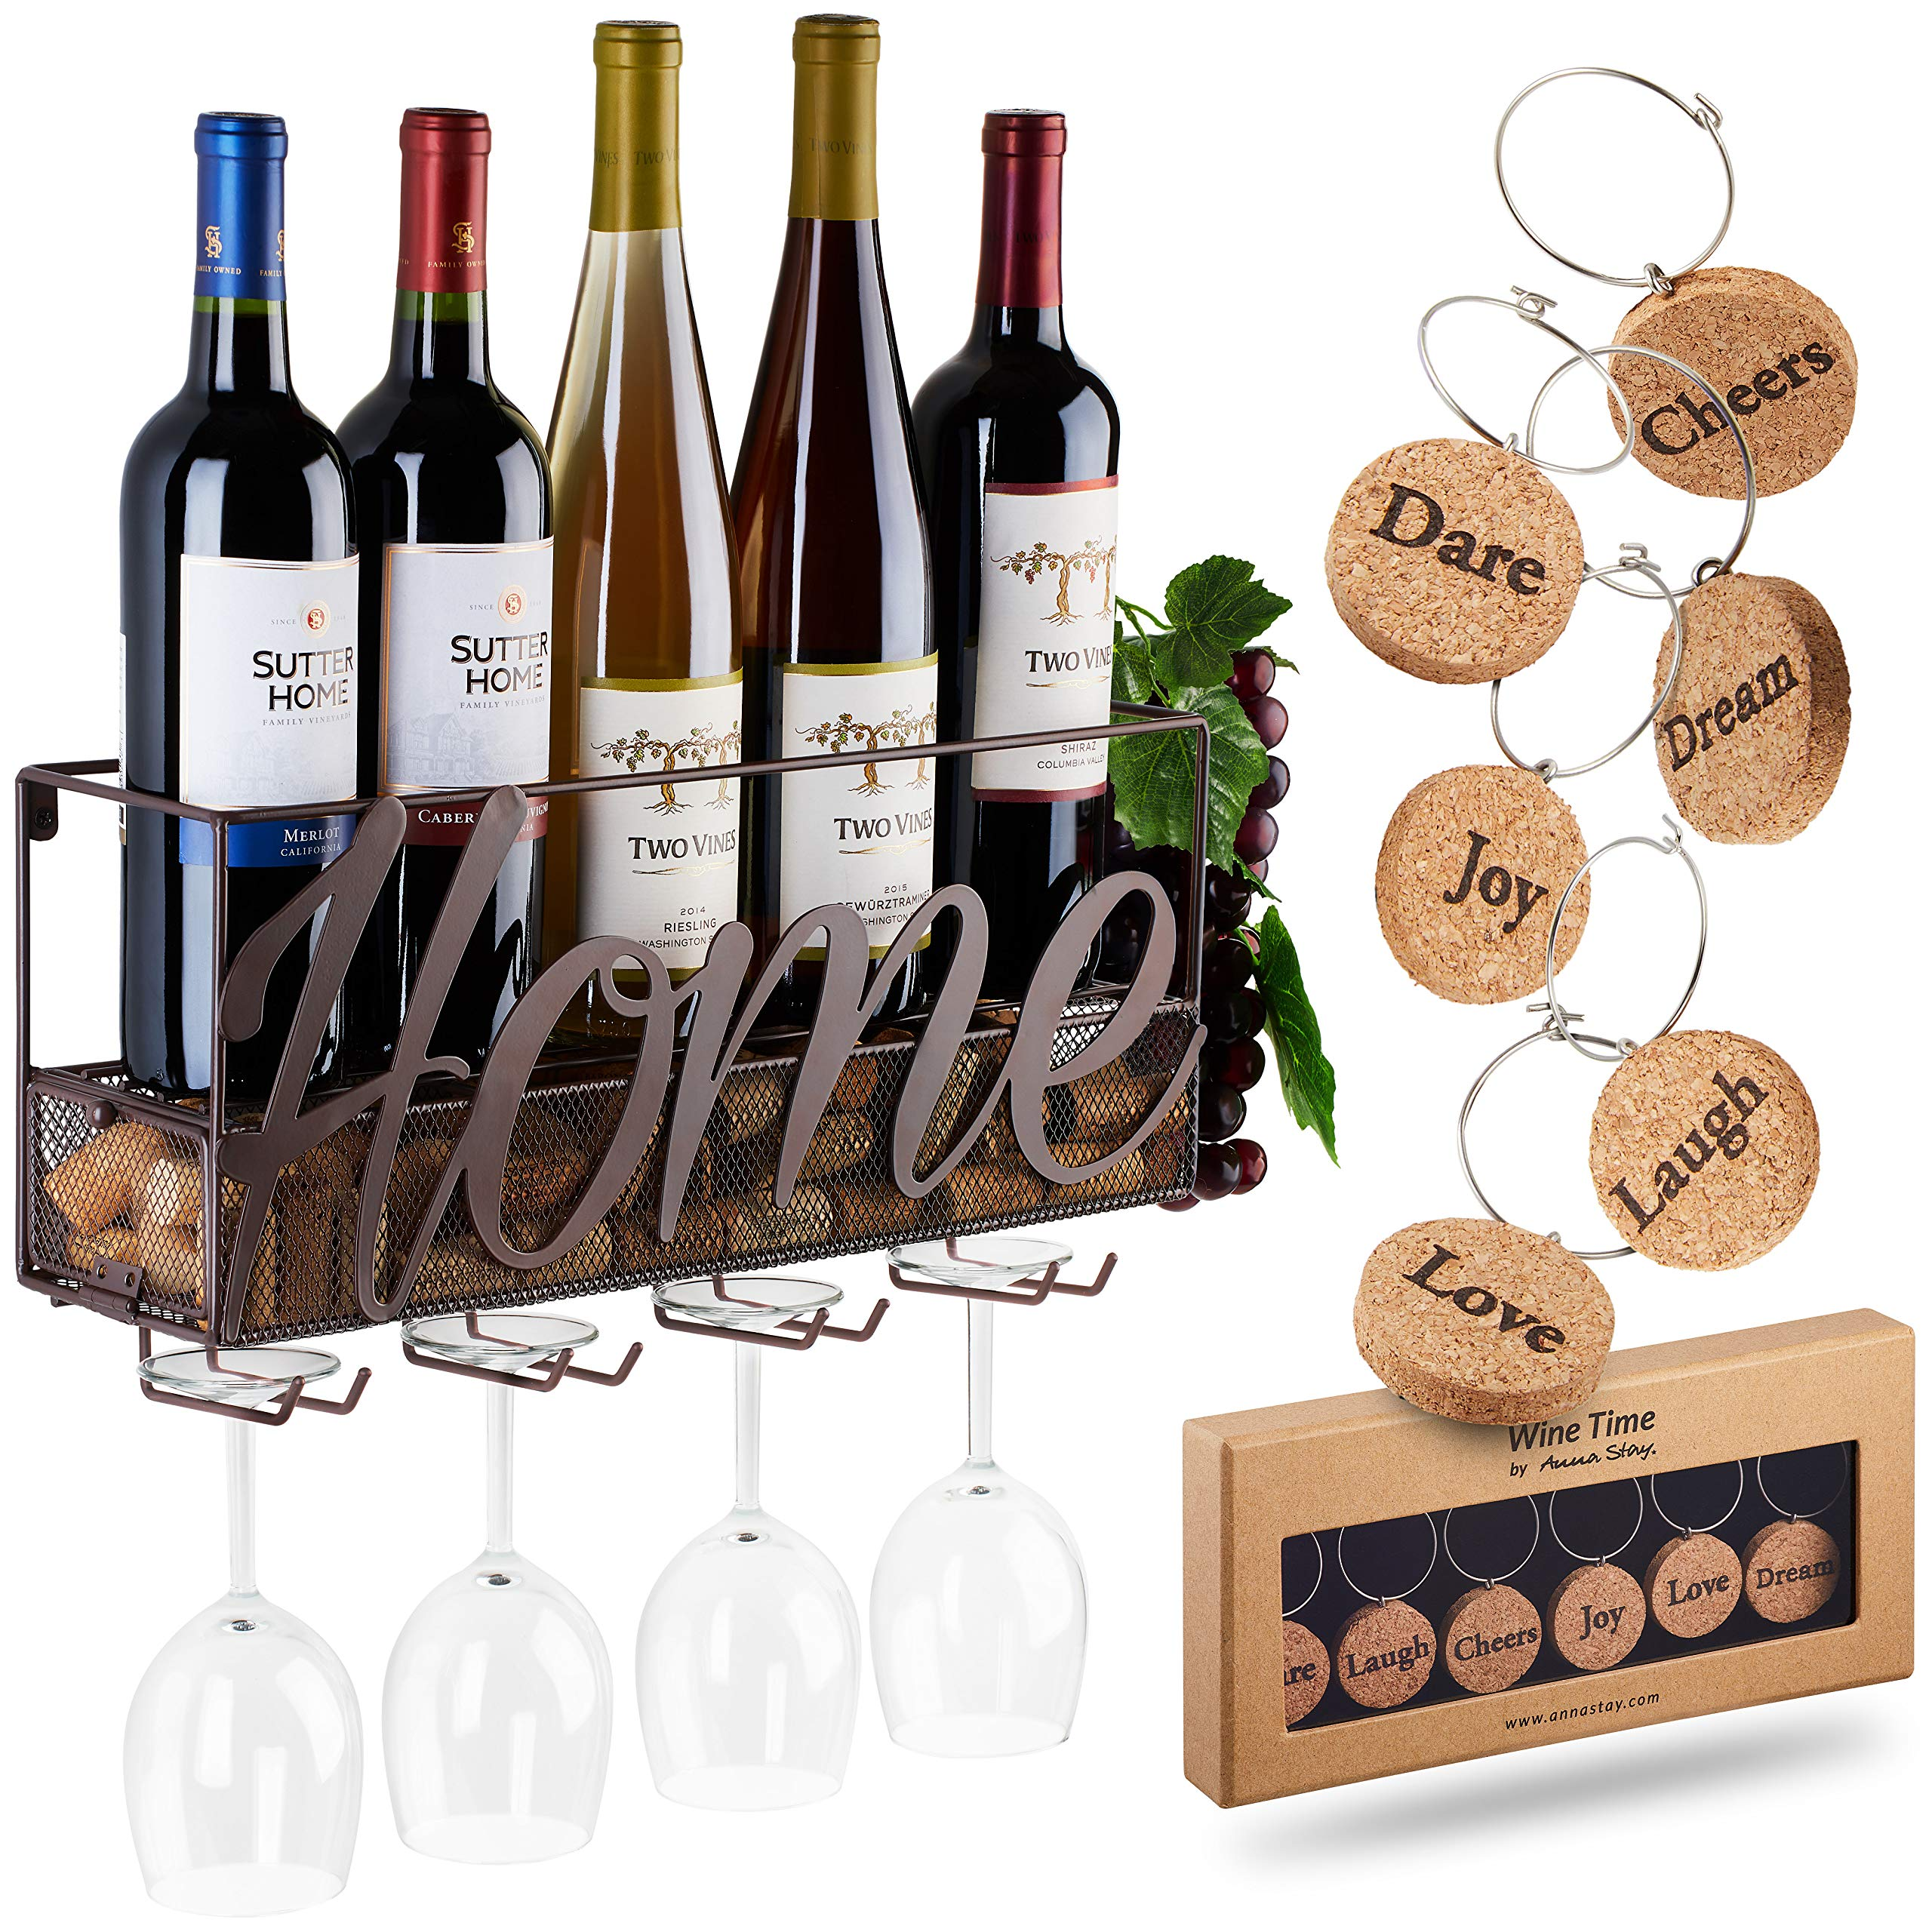 Wall Mounted Wine Rack - Bottle & Glass Holder - Cork Storage Store Red, White, Champagne - Come with 6 Cork Wine Charms - Home & Kitchen Décor - Storage Rack - Designed by Anna Stay,Home by TRIVETRUNNER -ANNA STAY